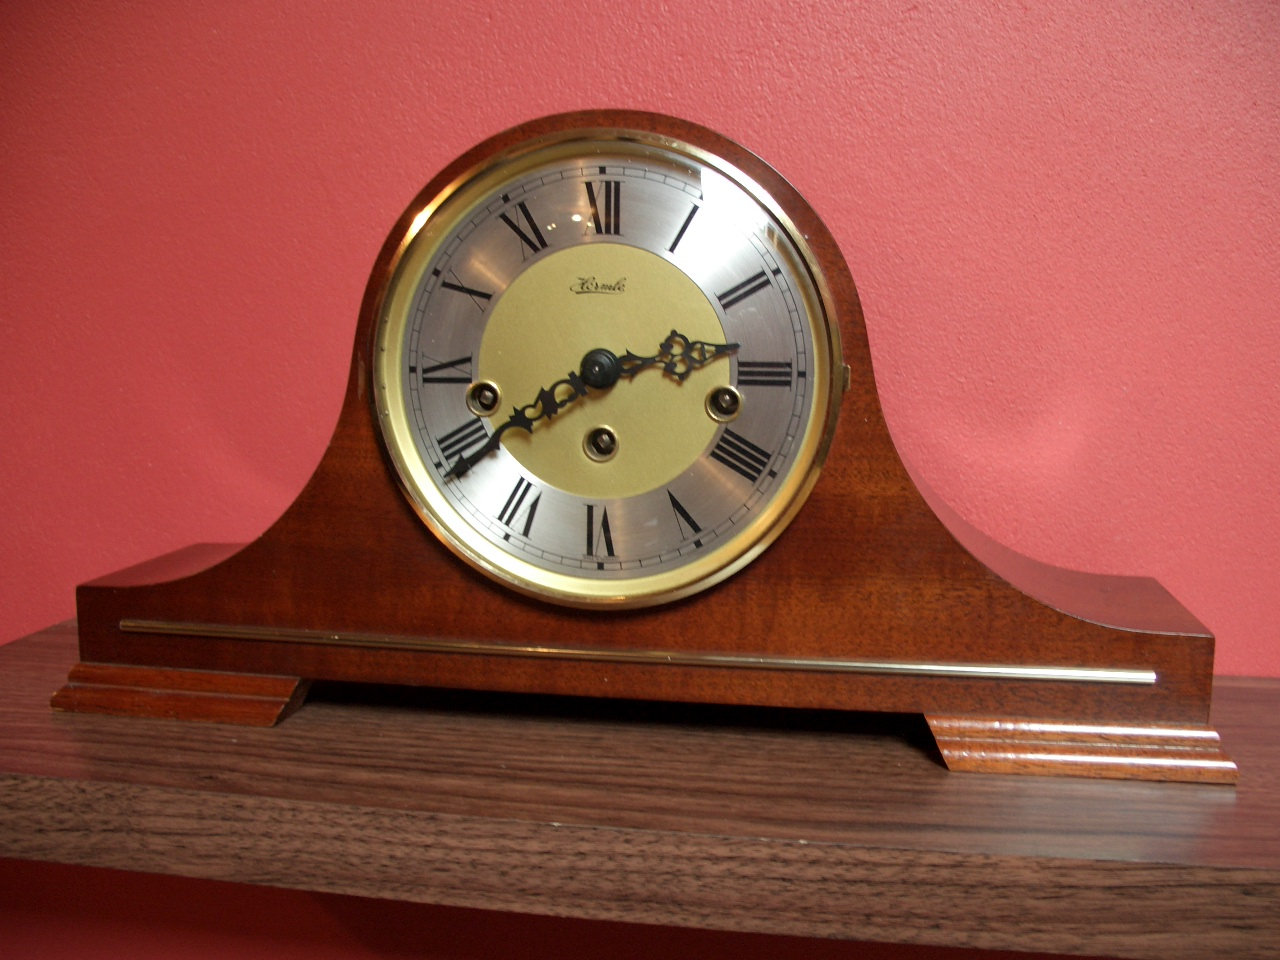 Hermle mantel clock – SOLD